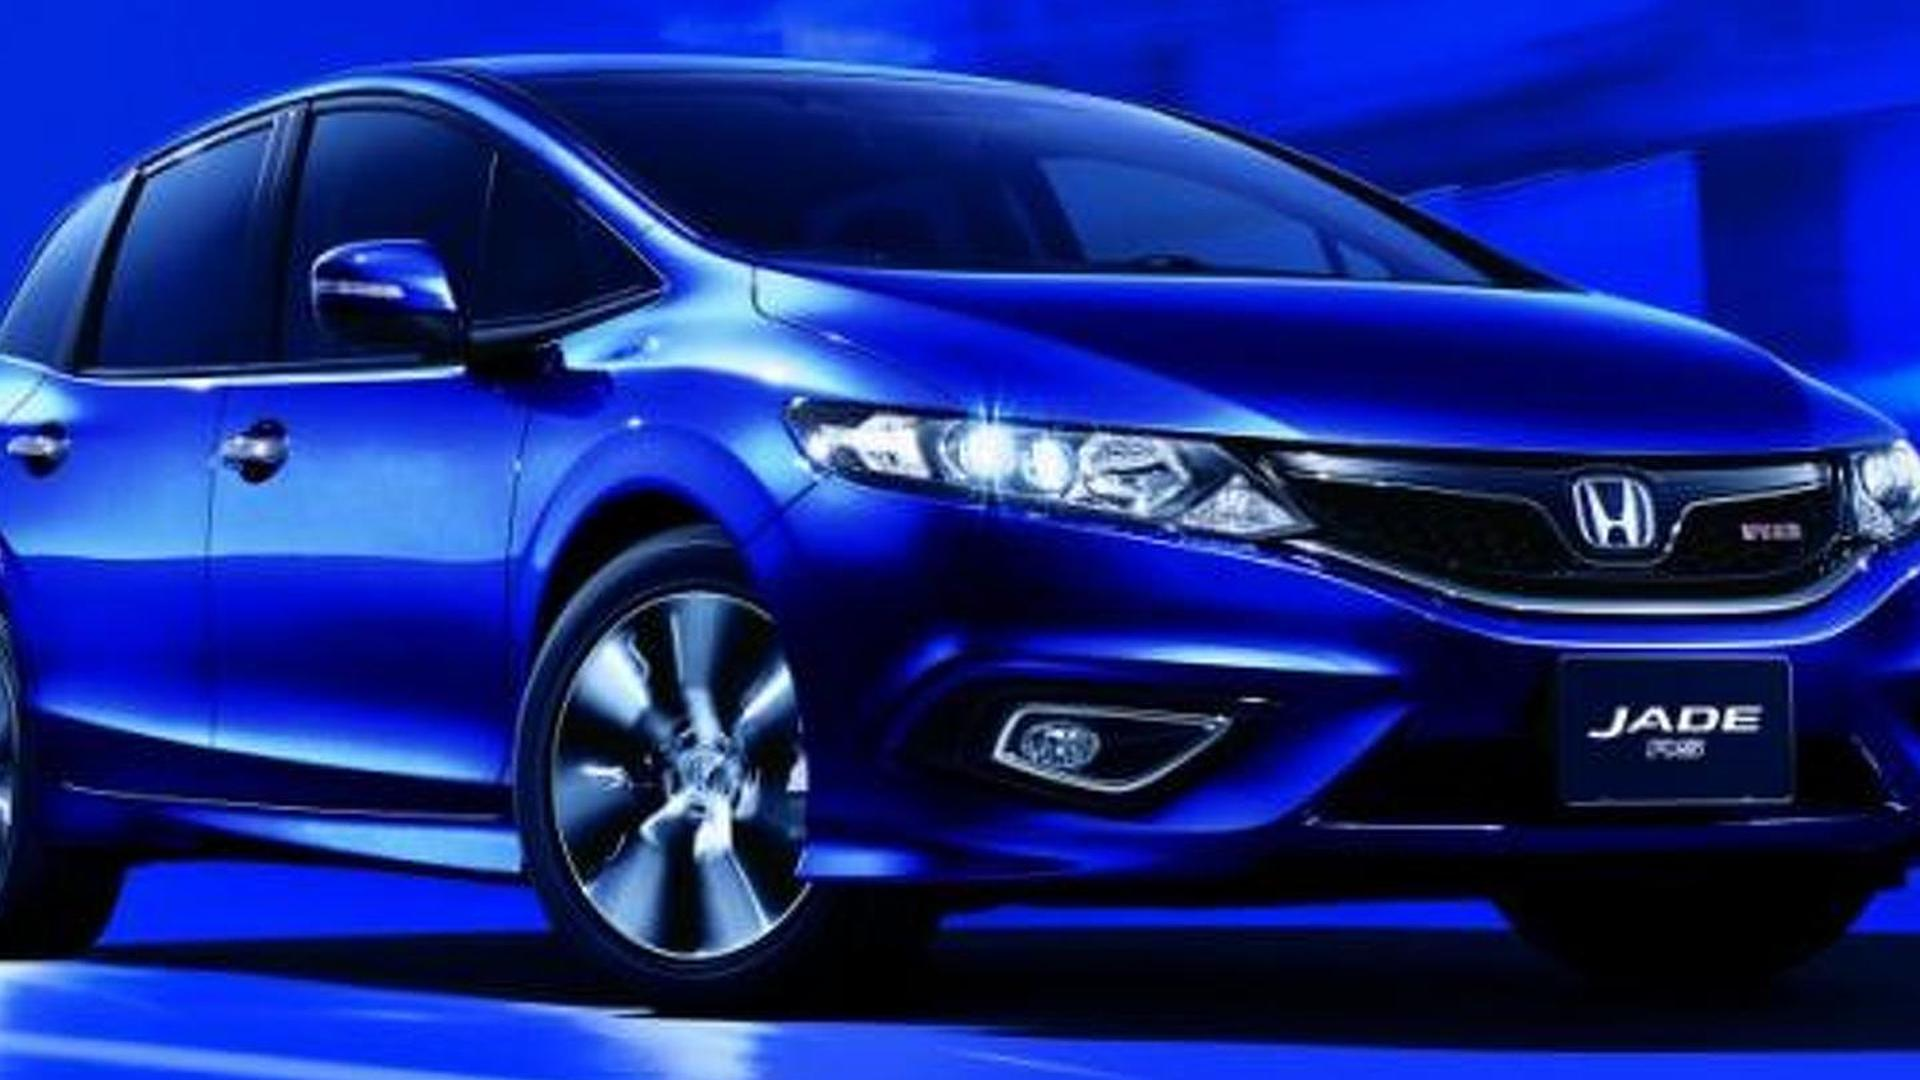 Honda Jade RS revealed with new 150 PS 1.5-liter turbo engine